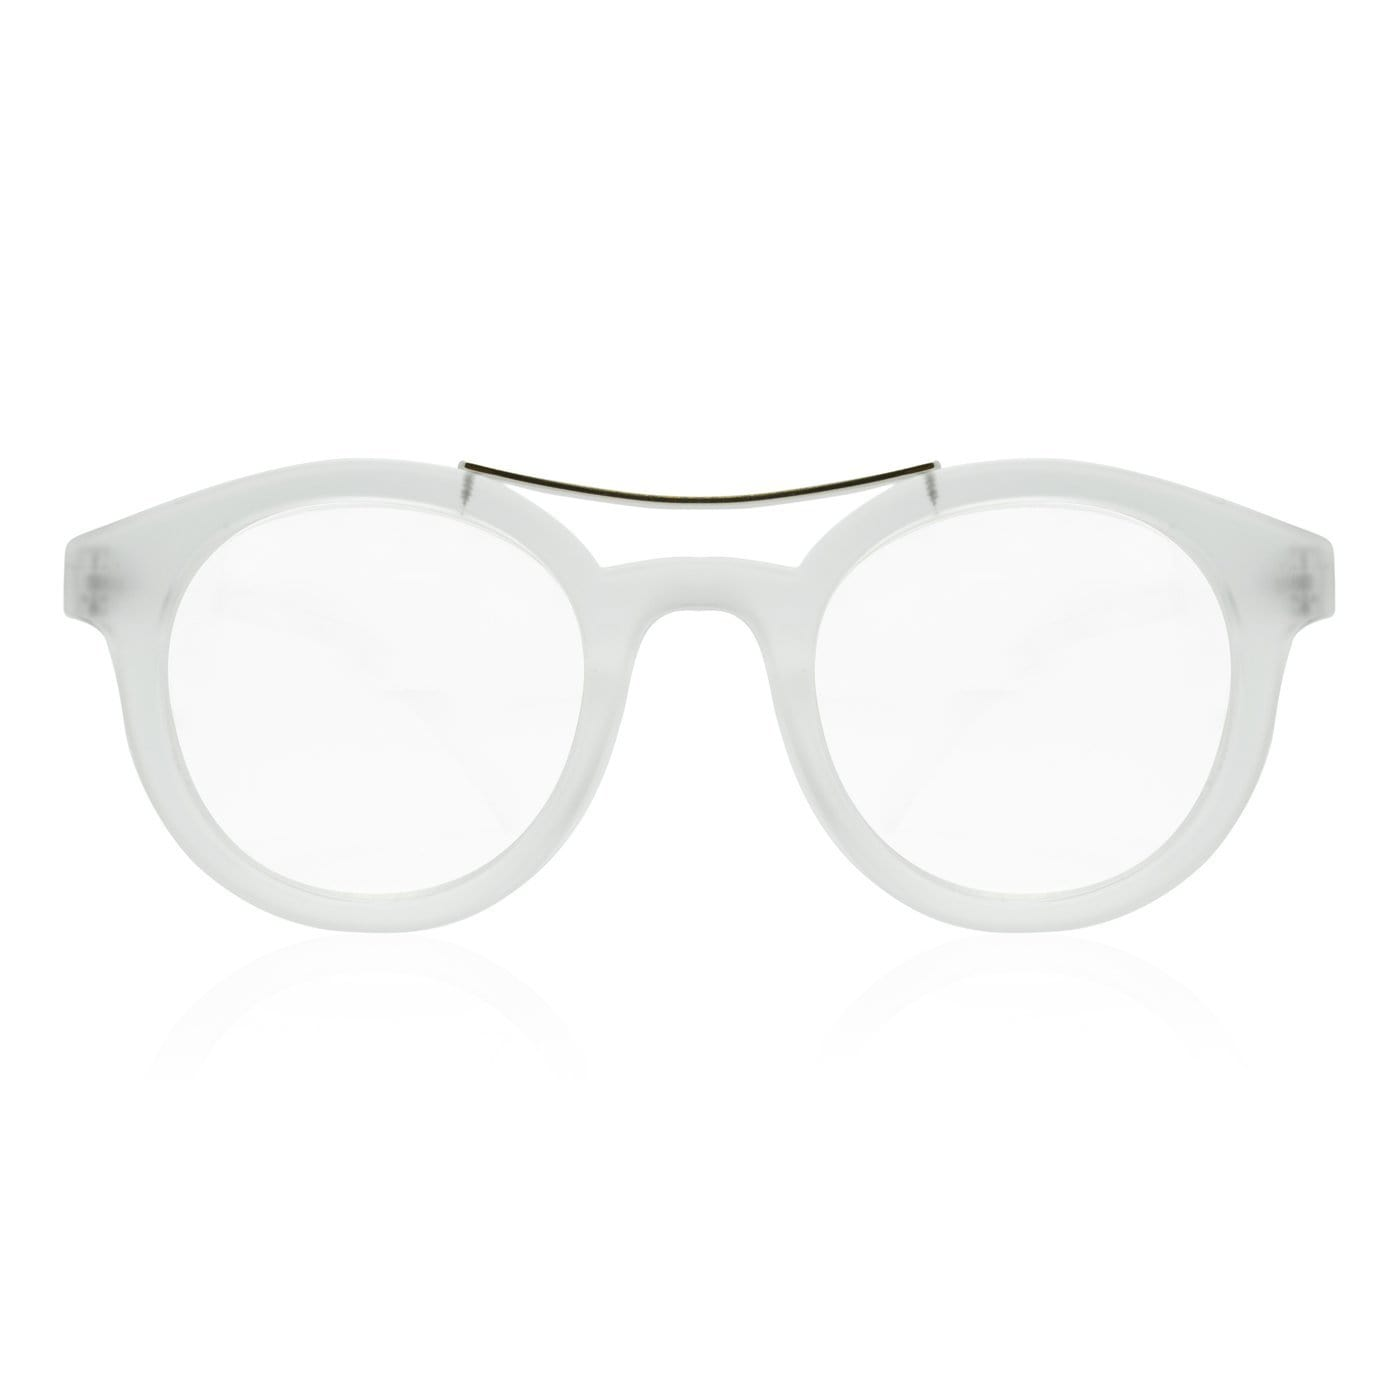 Meyer Translucent Matte Clear Blue Light Blocking Reading Glasses